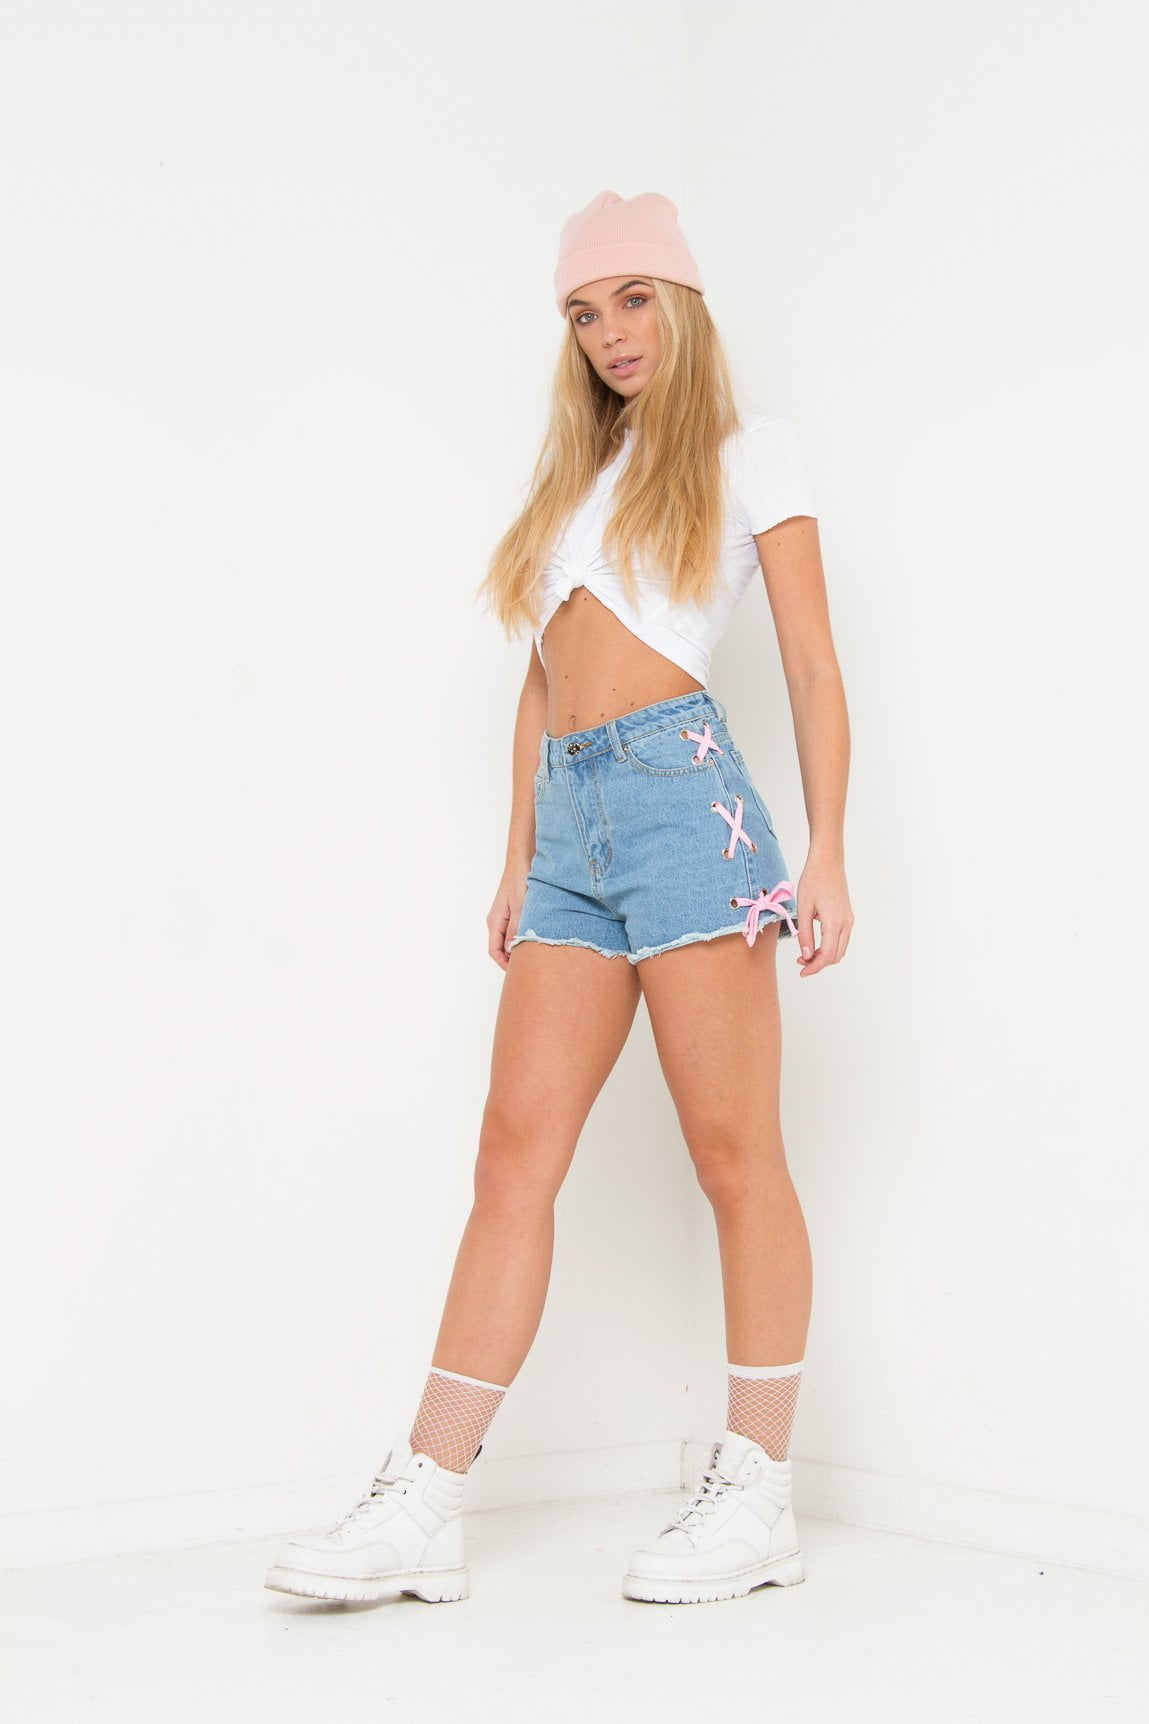 HIGH RISE DENIM SHORTS WITH EYELET& LACE - Liquor N Poker  Liquor N Poker